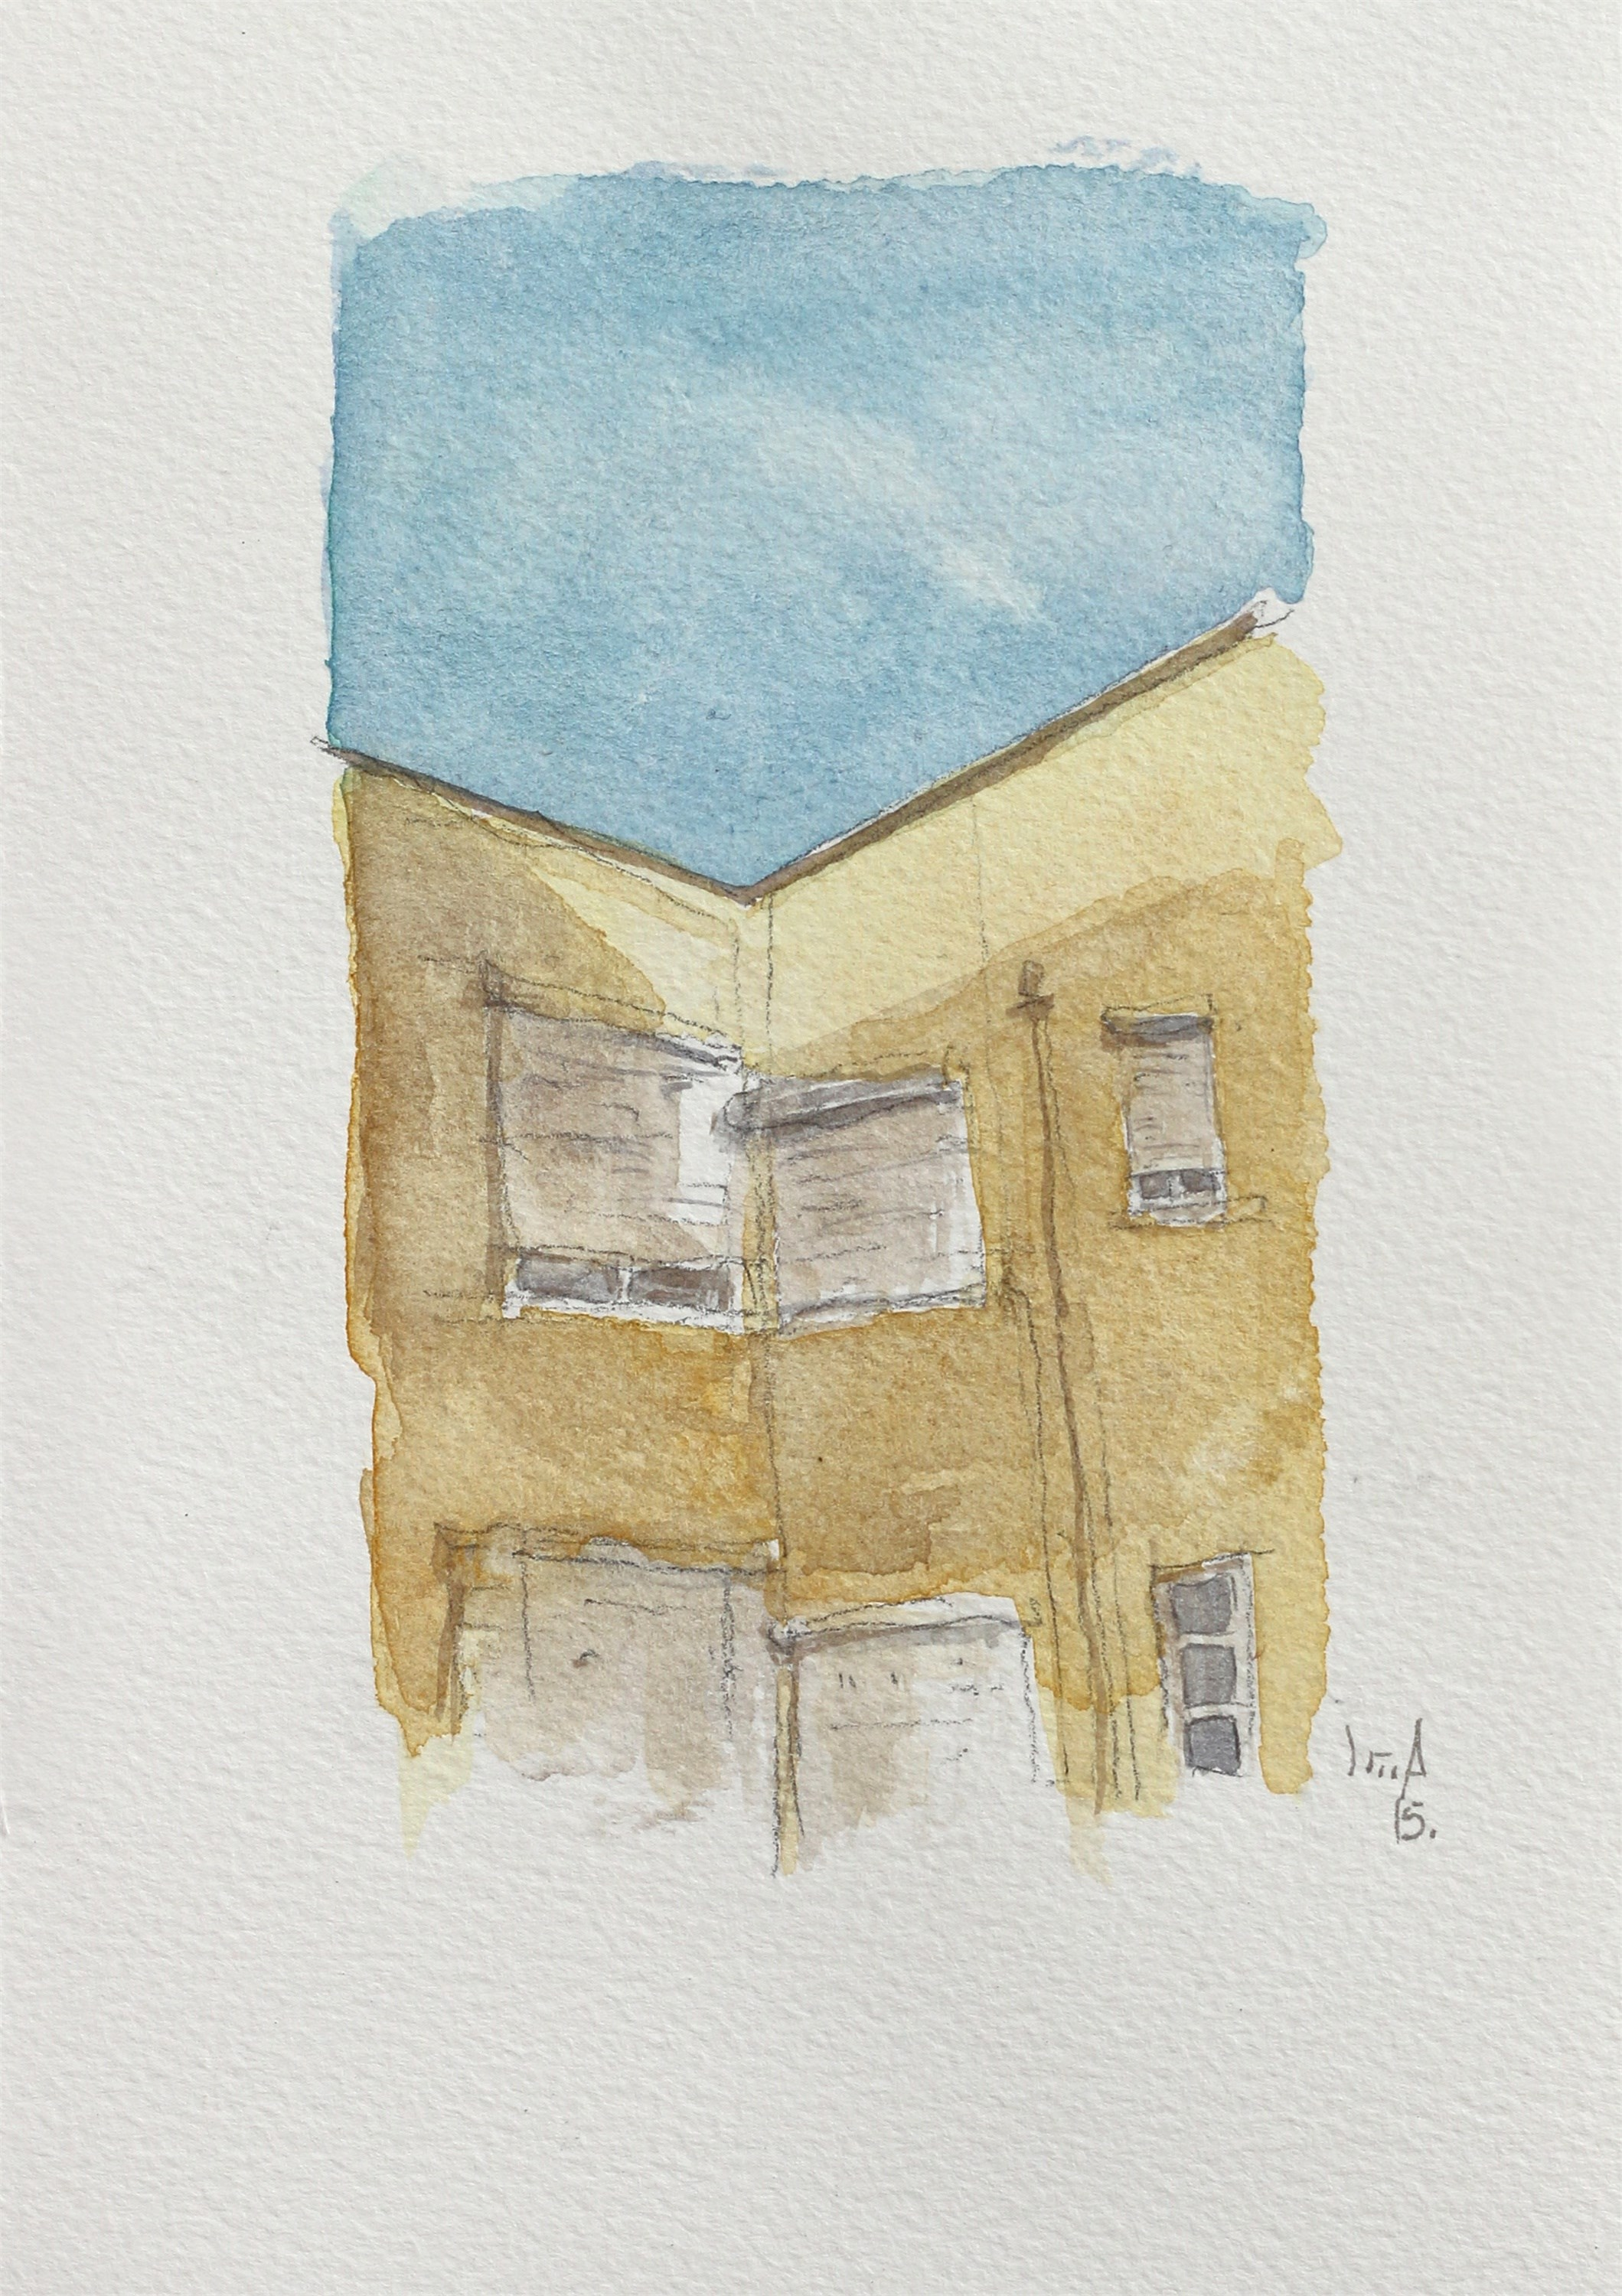 Sesta, original Architecture Watercolor Drawing and Illustration by João Gil Antunes